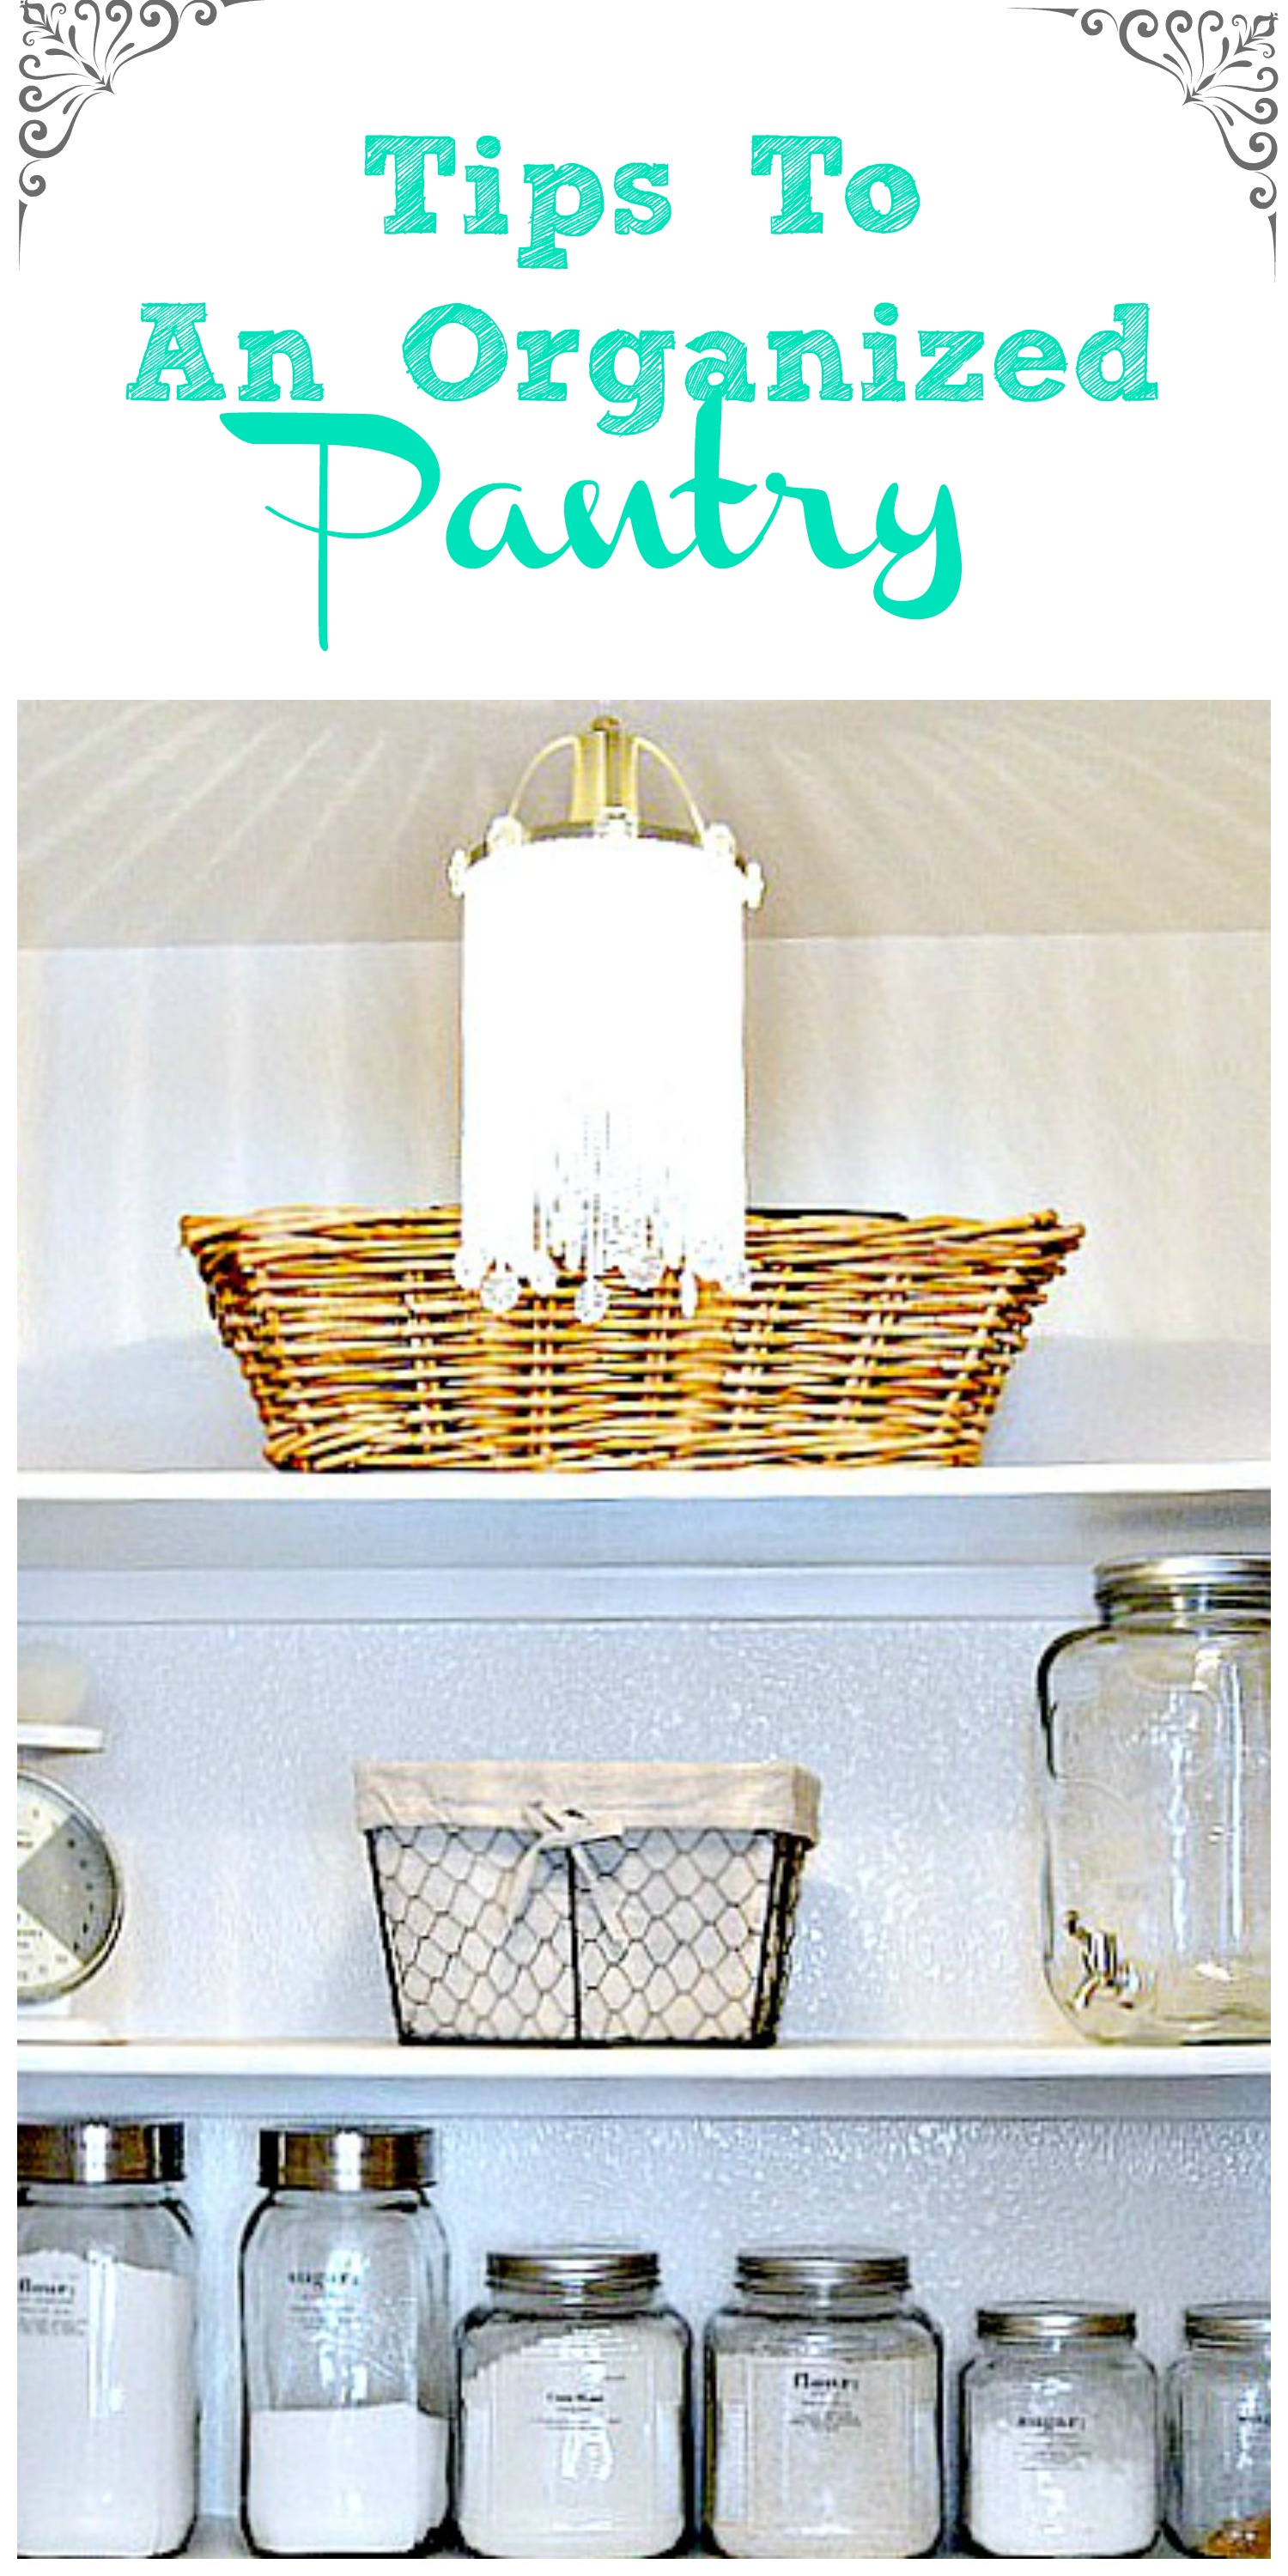 How to organize the pantry, great tips!